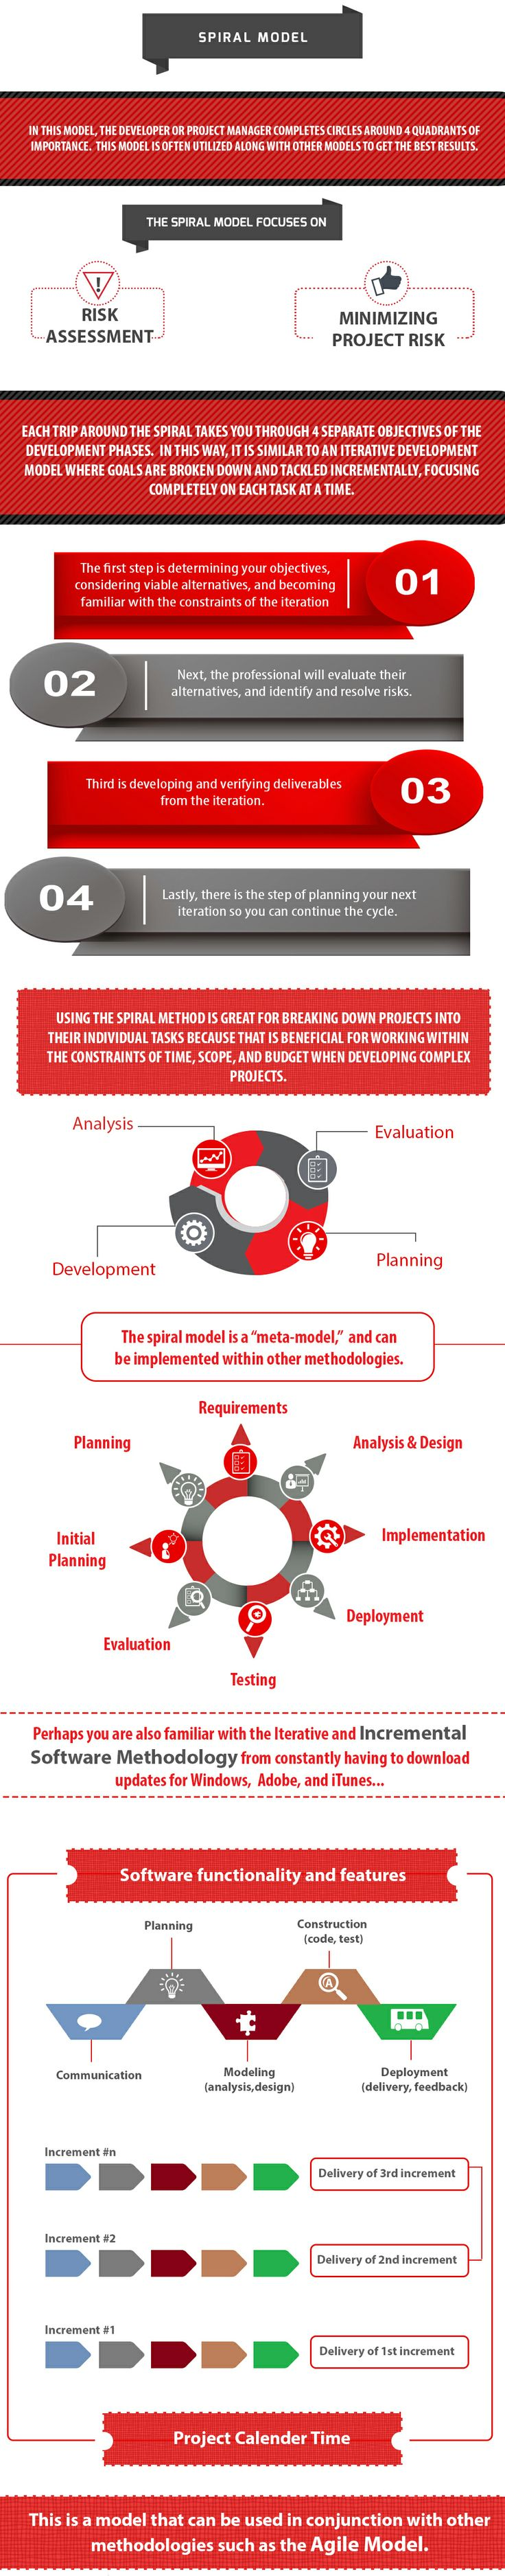 There are several common models you can use to streamline the #software #development process, for which the development team is responsible for utilizing the methodology most appropriate for their project. Sometimes combinations of the models may work best. Our latest #infographic shows the most commonly-employed models and methodologies that make up the full circle of the software development cycle. http://www.oxagile.com/company/blog/software-development-life-cycle/ #spiral